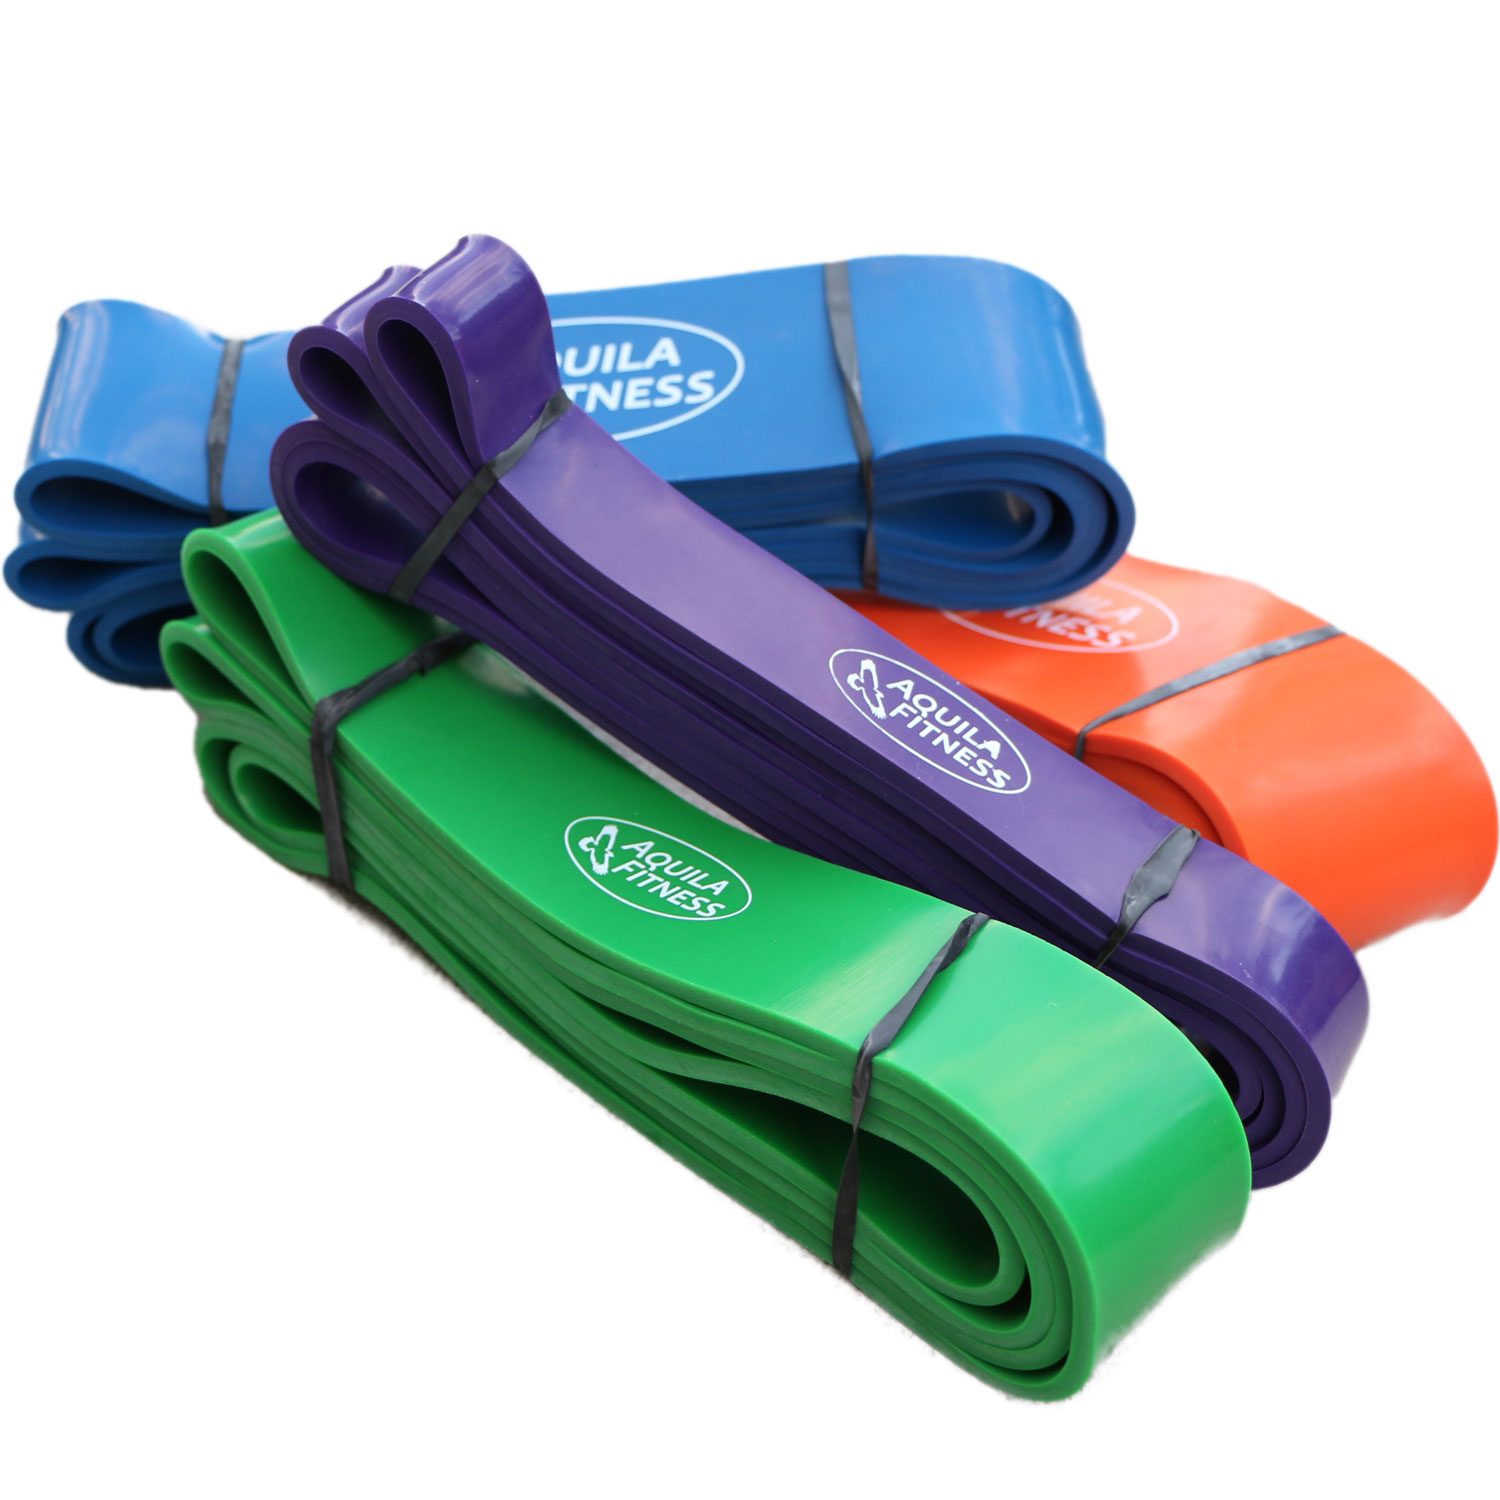 Weight Lifting Resistance Bands